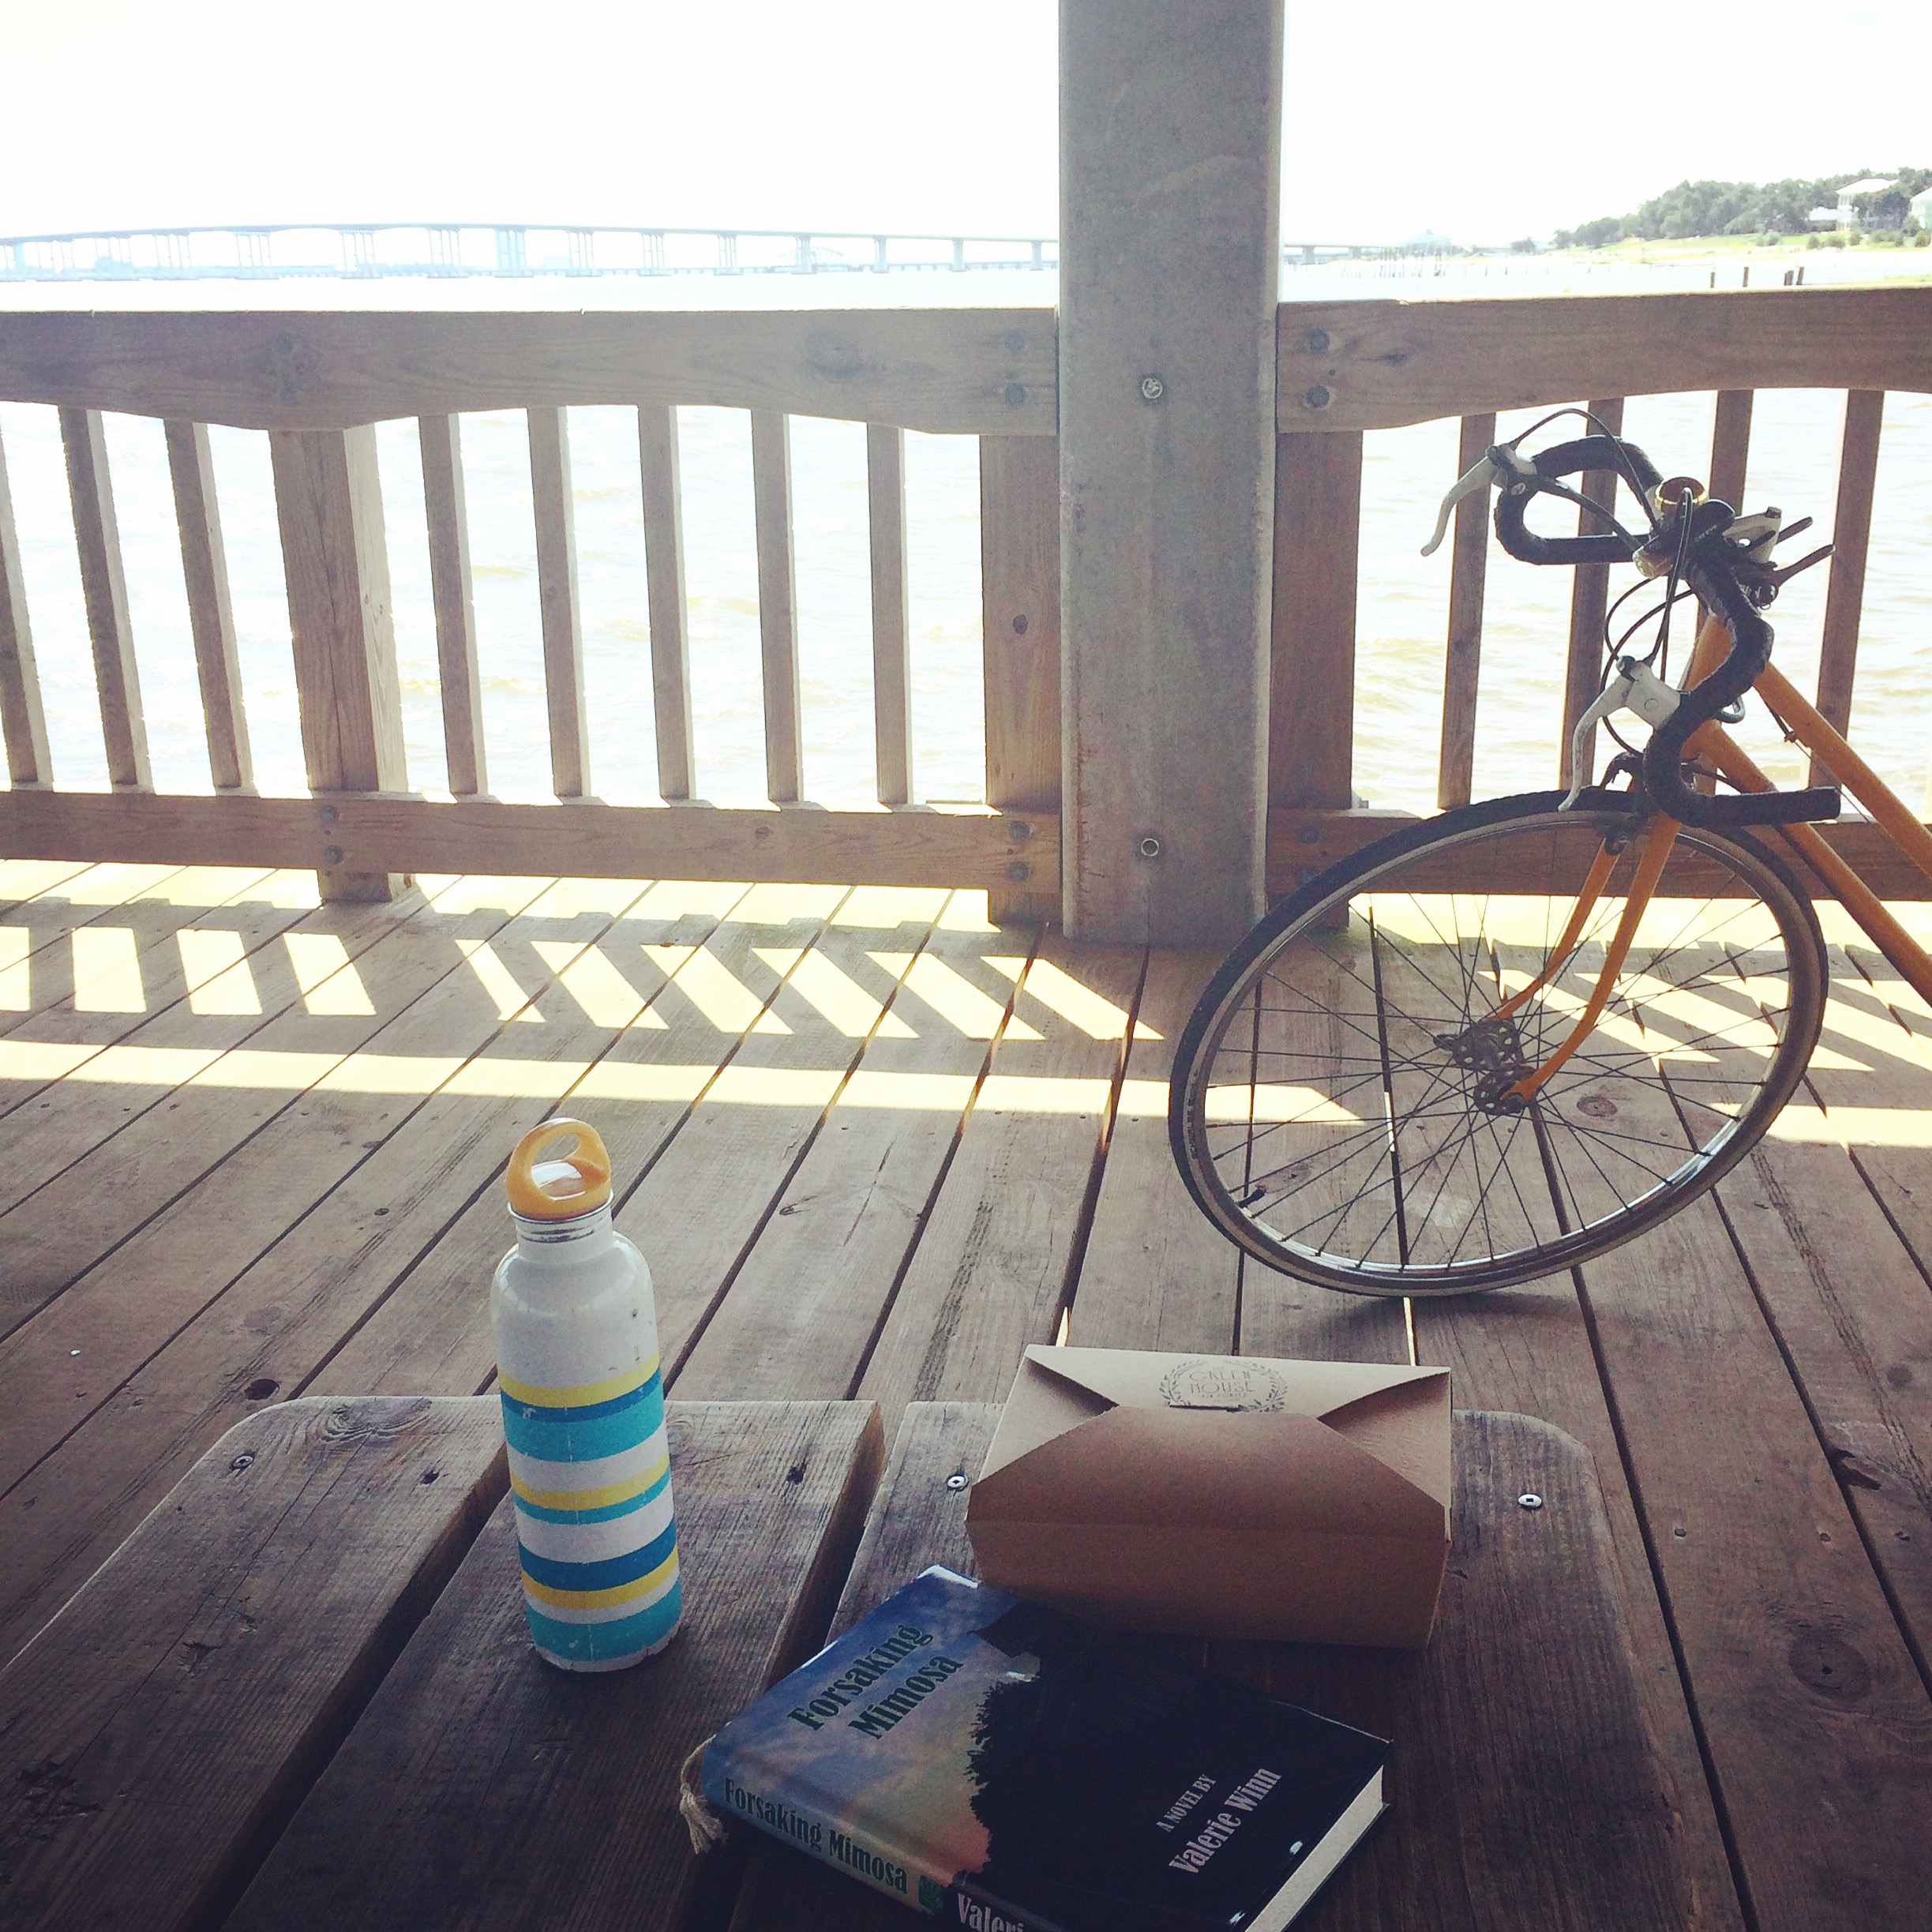 I finished reading Forsaking Mimosa while sitting on a pier on East Beach eating a snack box!